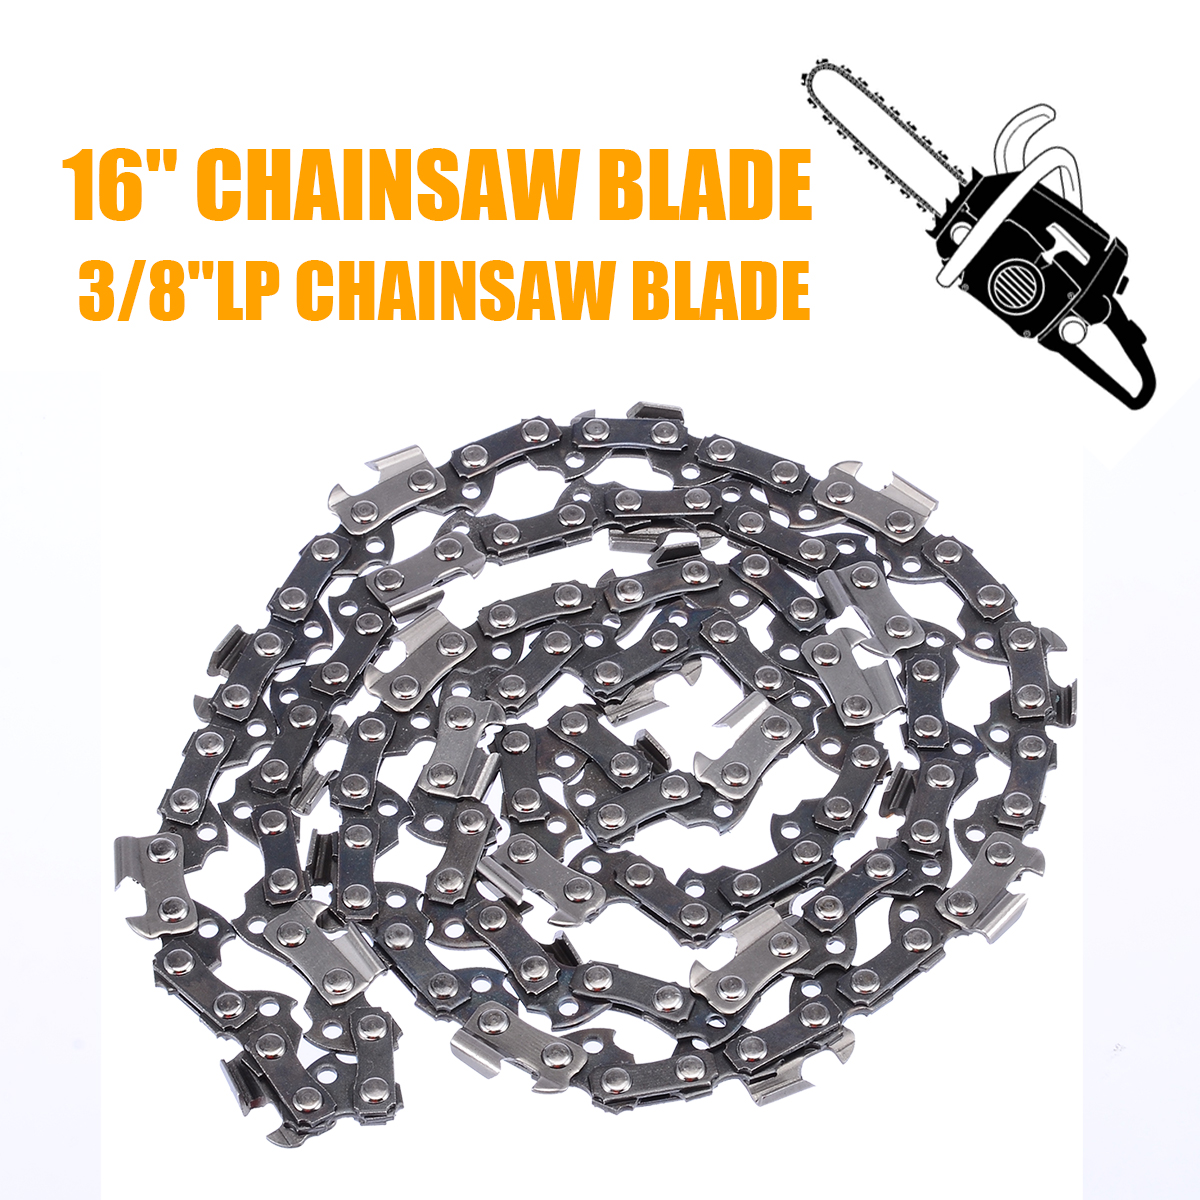 <font><b>16</b></font> <font><b>inch</b></font> <font><b>Chainsaw</b></font> Saw <font><b>Chain</b></font> Blade Pitch 3/8